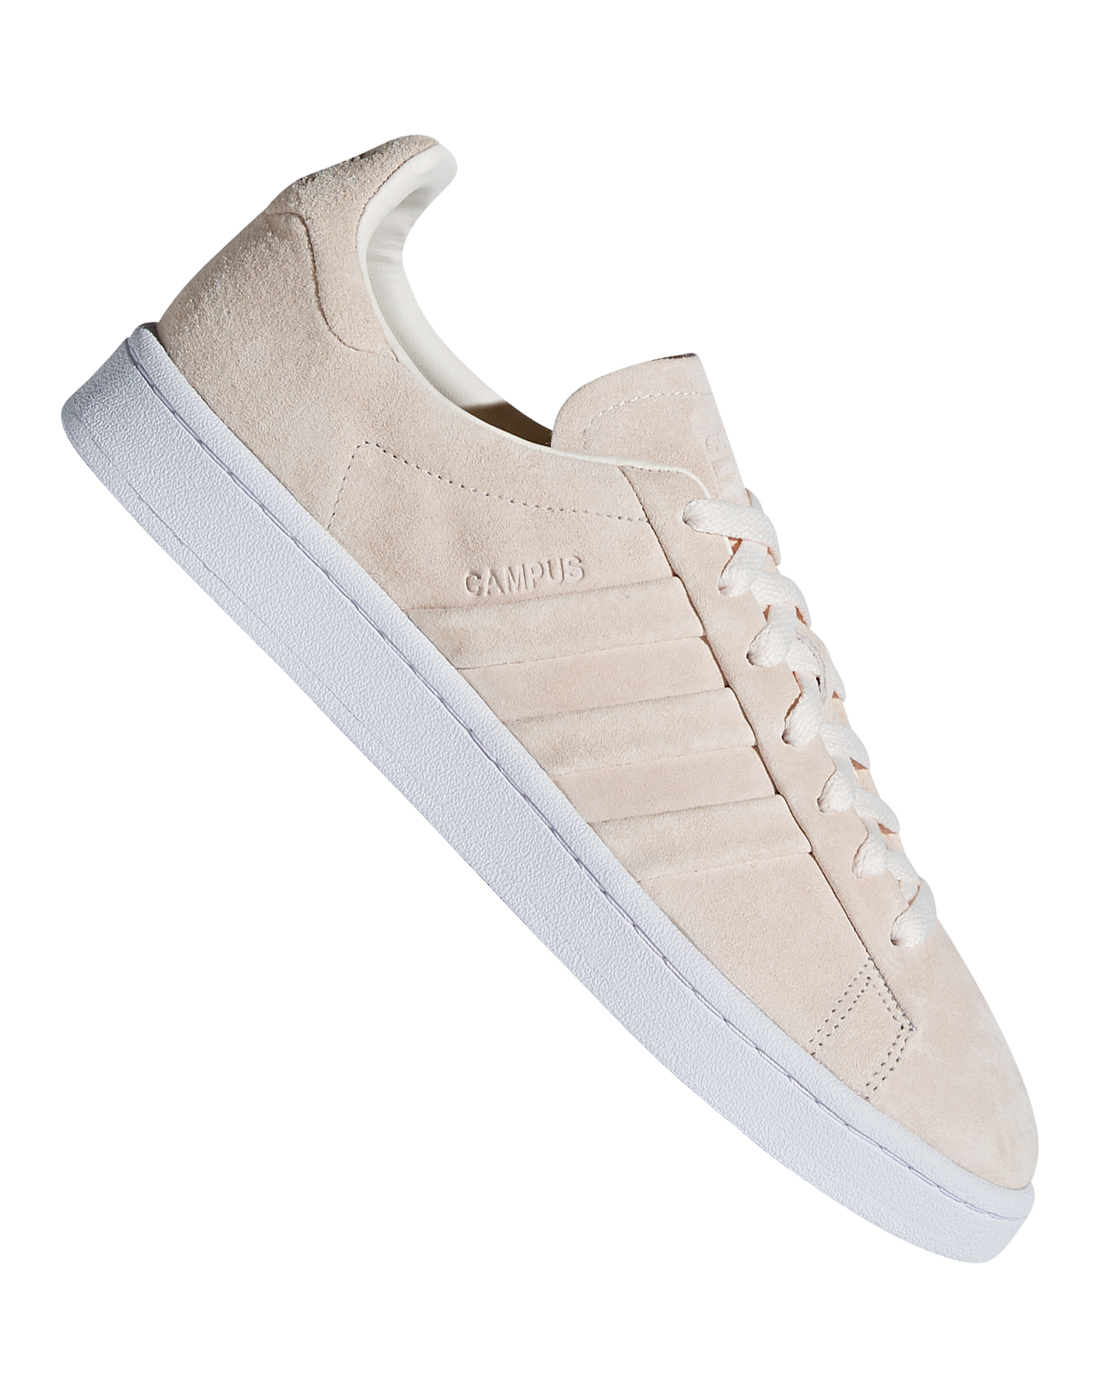 adidas Originals. Mens Campus Stitch. Mens Campus Stitch ... e9098d659c